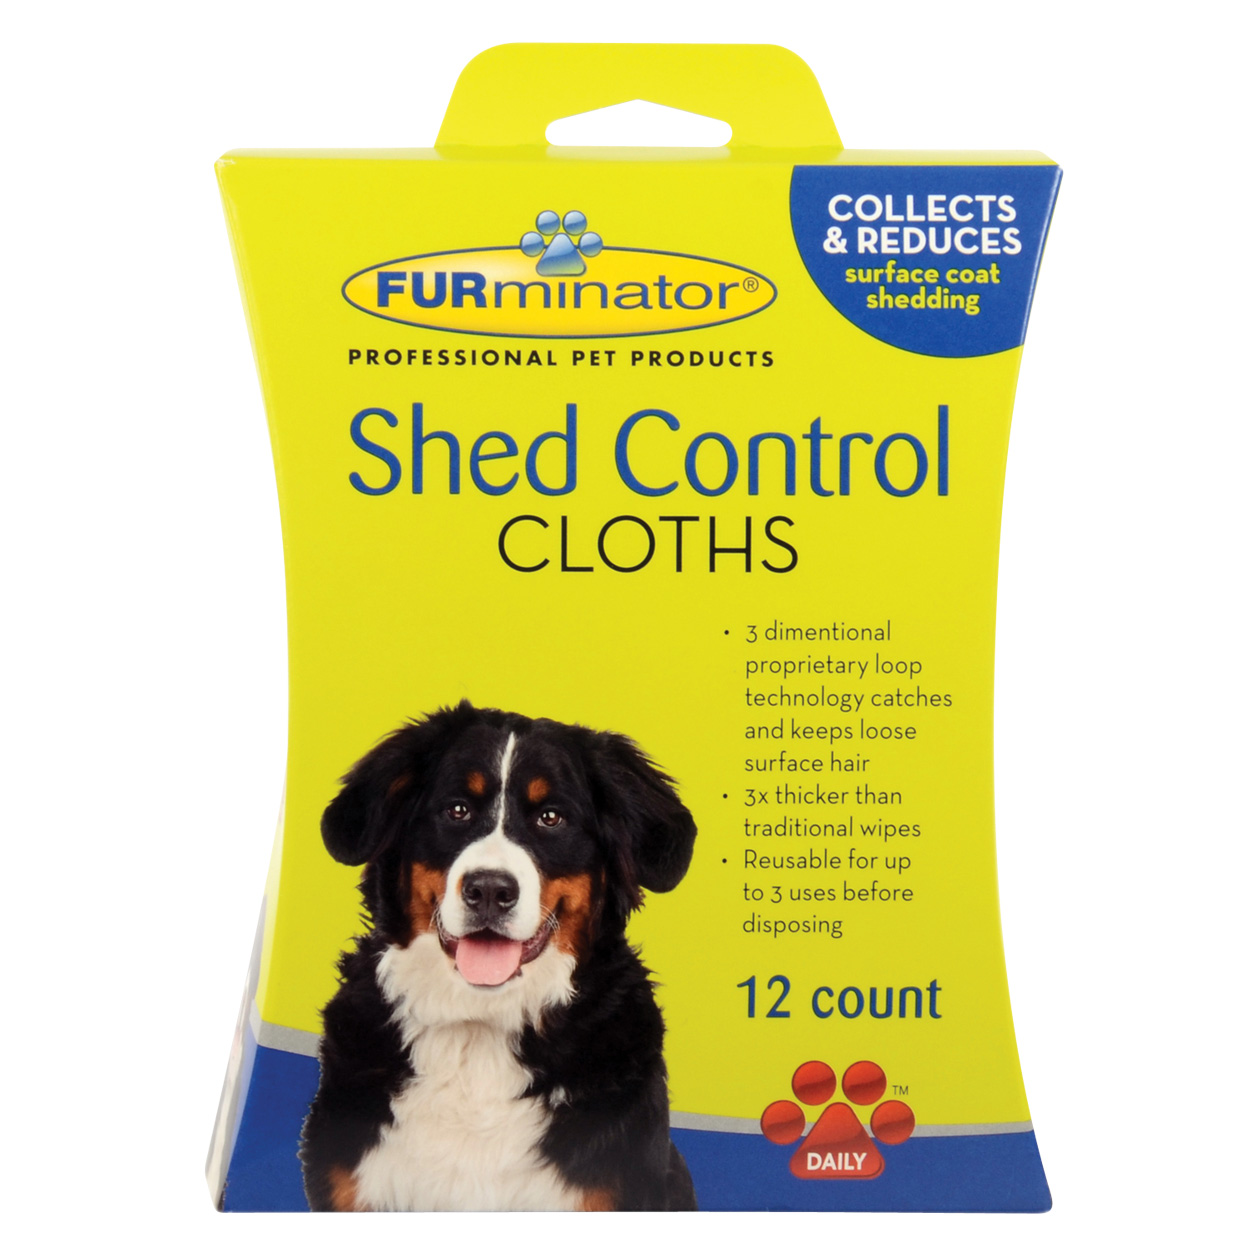 FURminator Shed Control Cloths for Dogs - 12 pk 10784